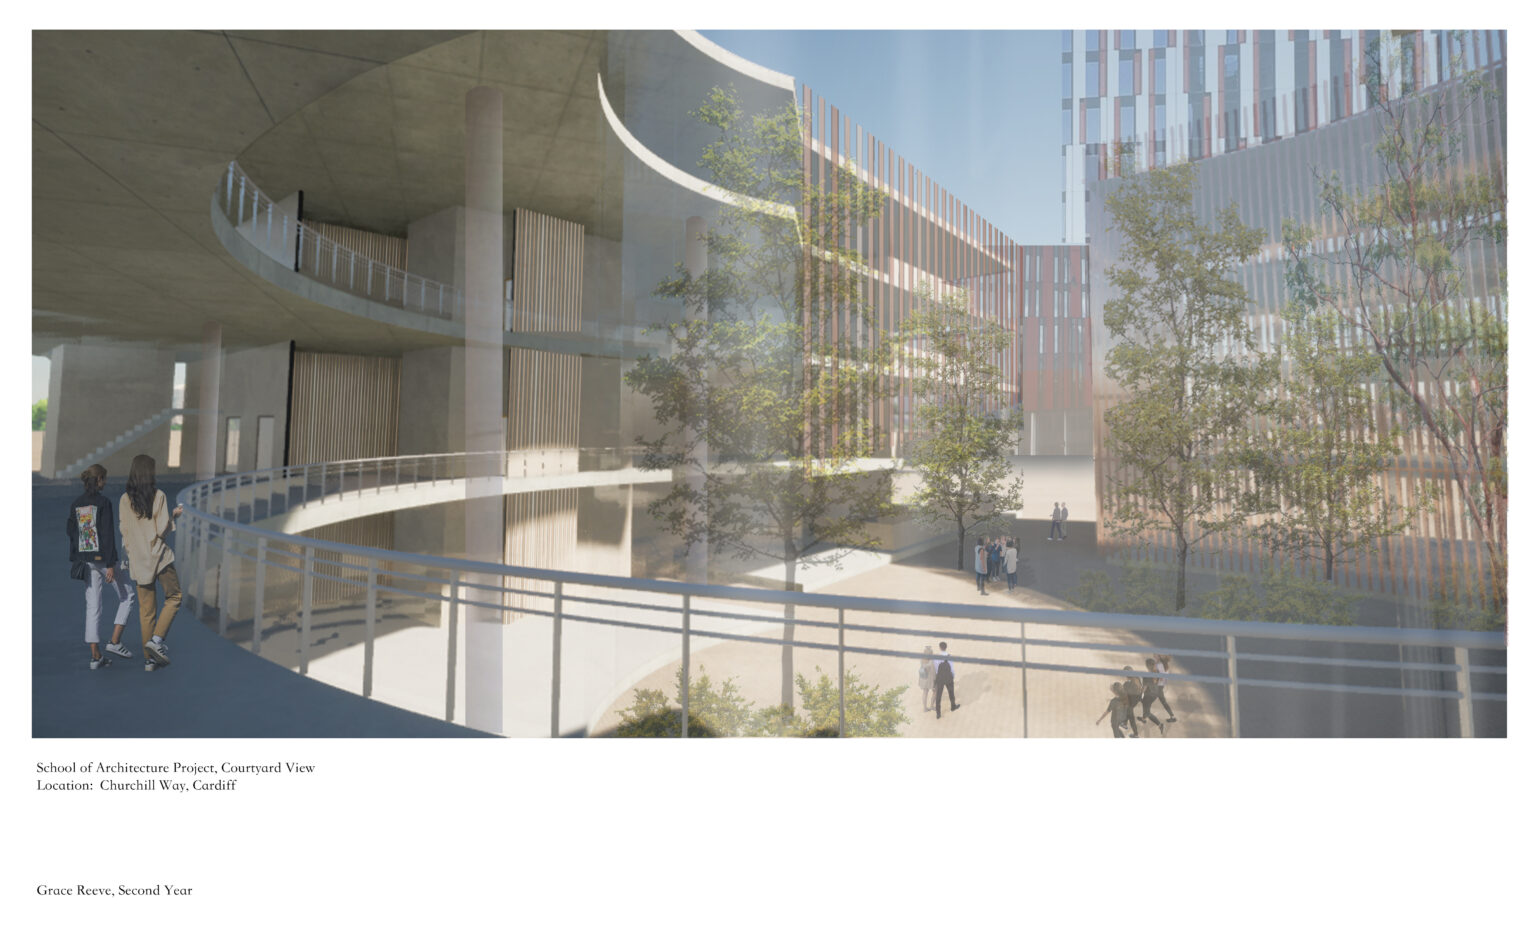 Courtyard View of the scheme proposed by Grace Reeve